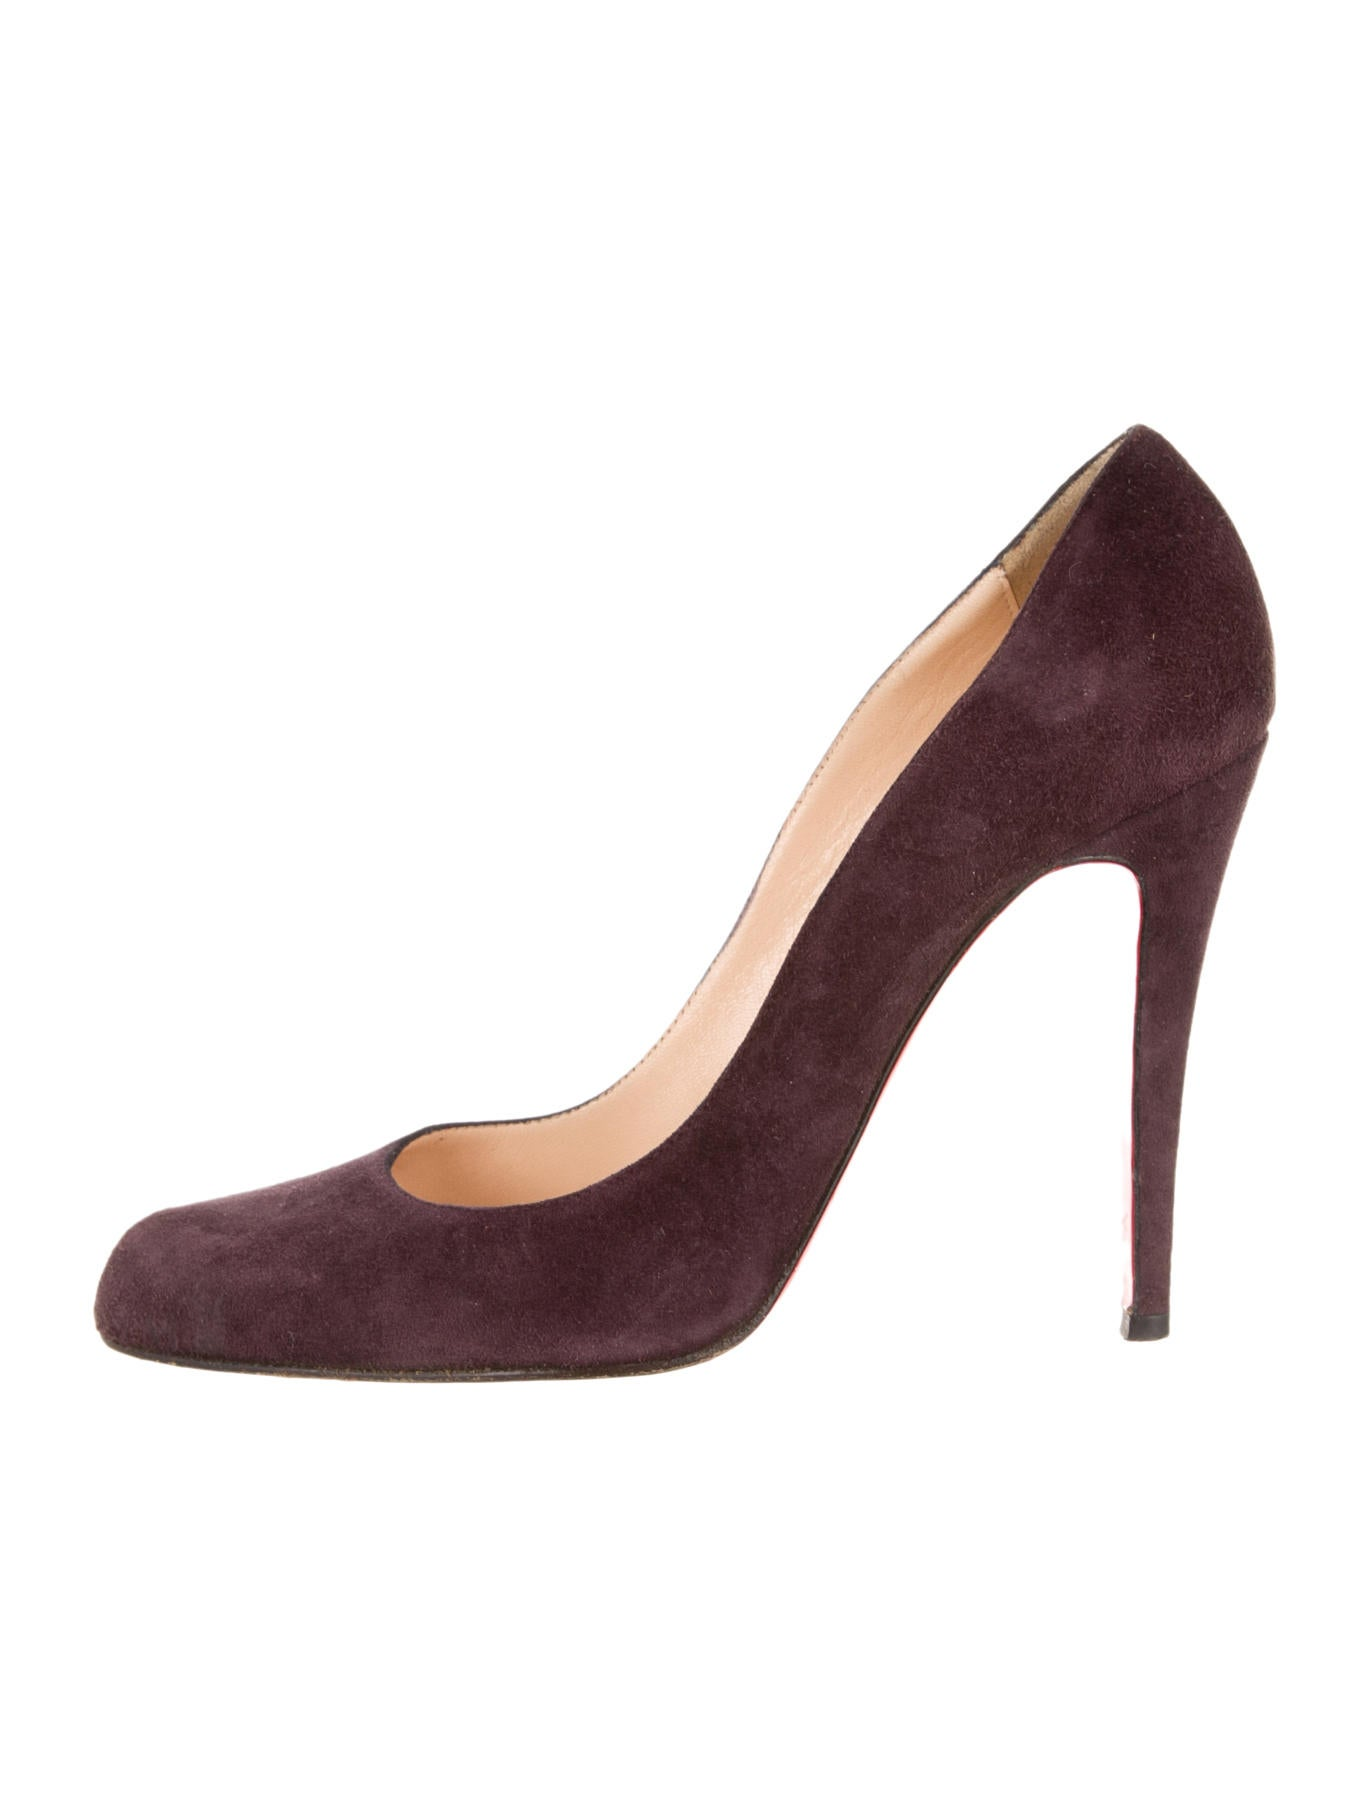 45f6f2bf6985 christian louboutin Simple pointed-toe pumps Eggplant suede covered heels